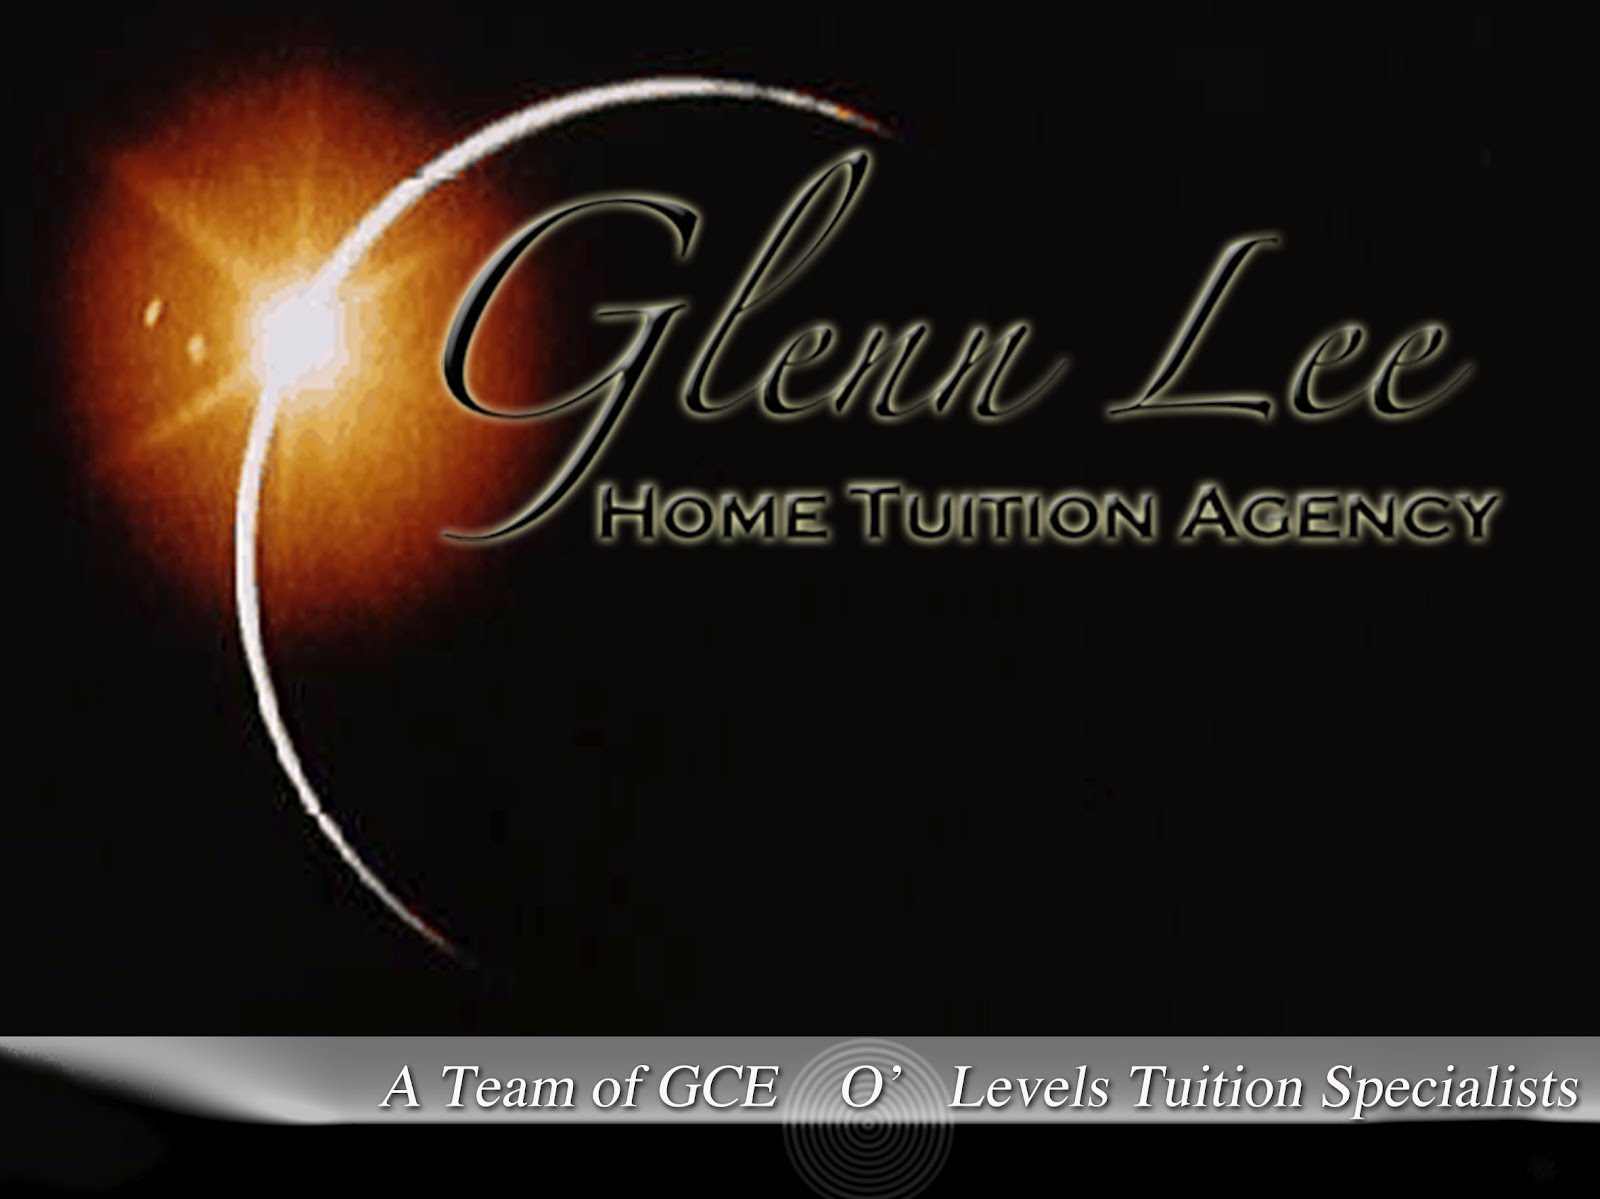 Glenn Lee Specialized Home Tuition